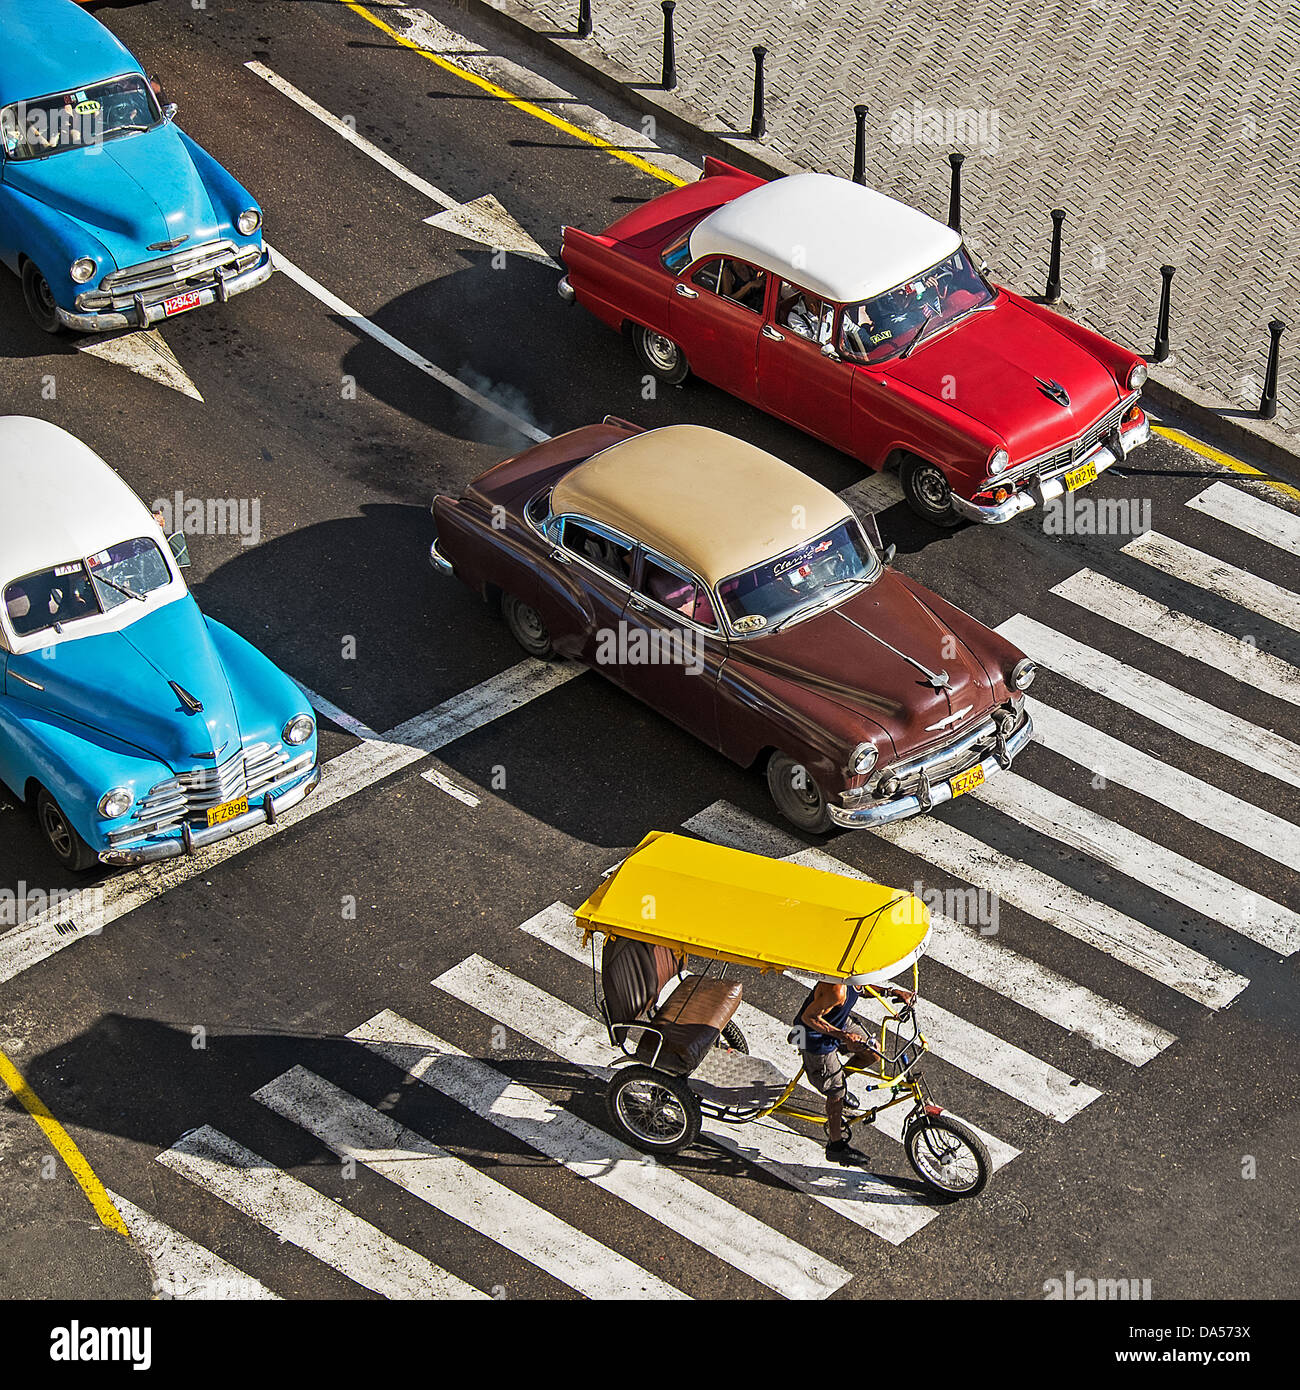 Automobiles at Traffic Signals - Stock Image